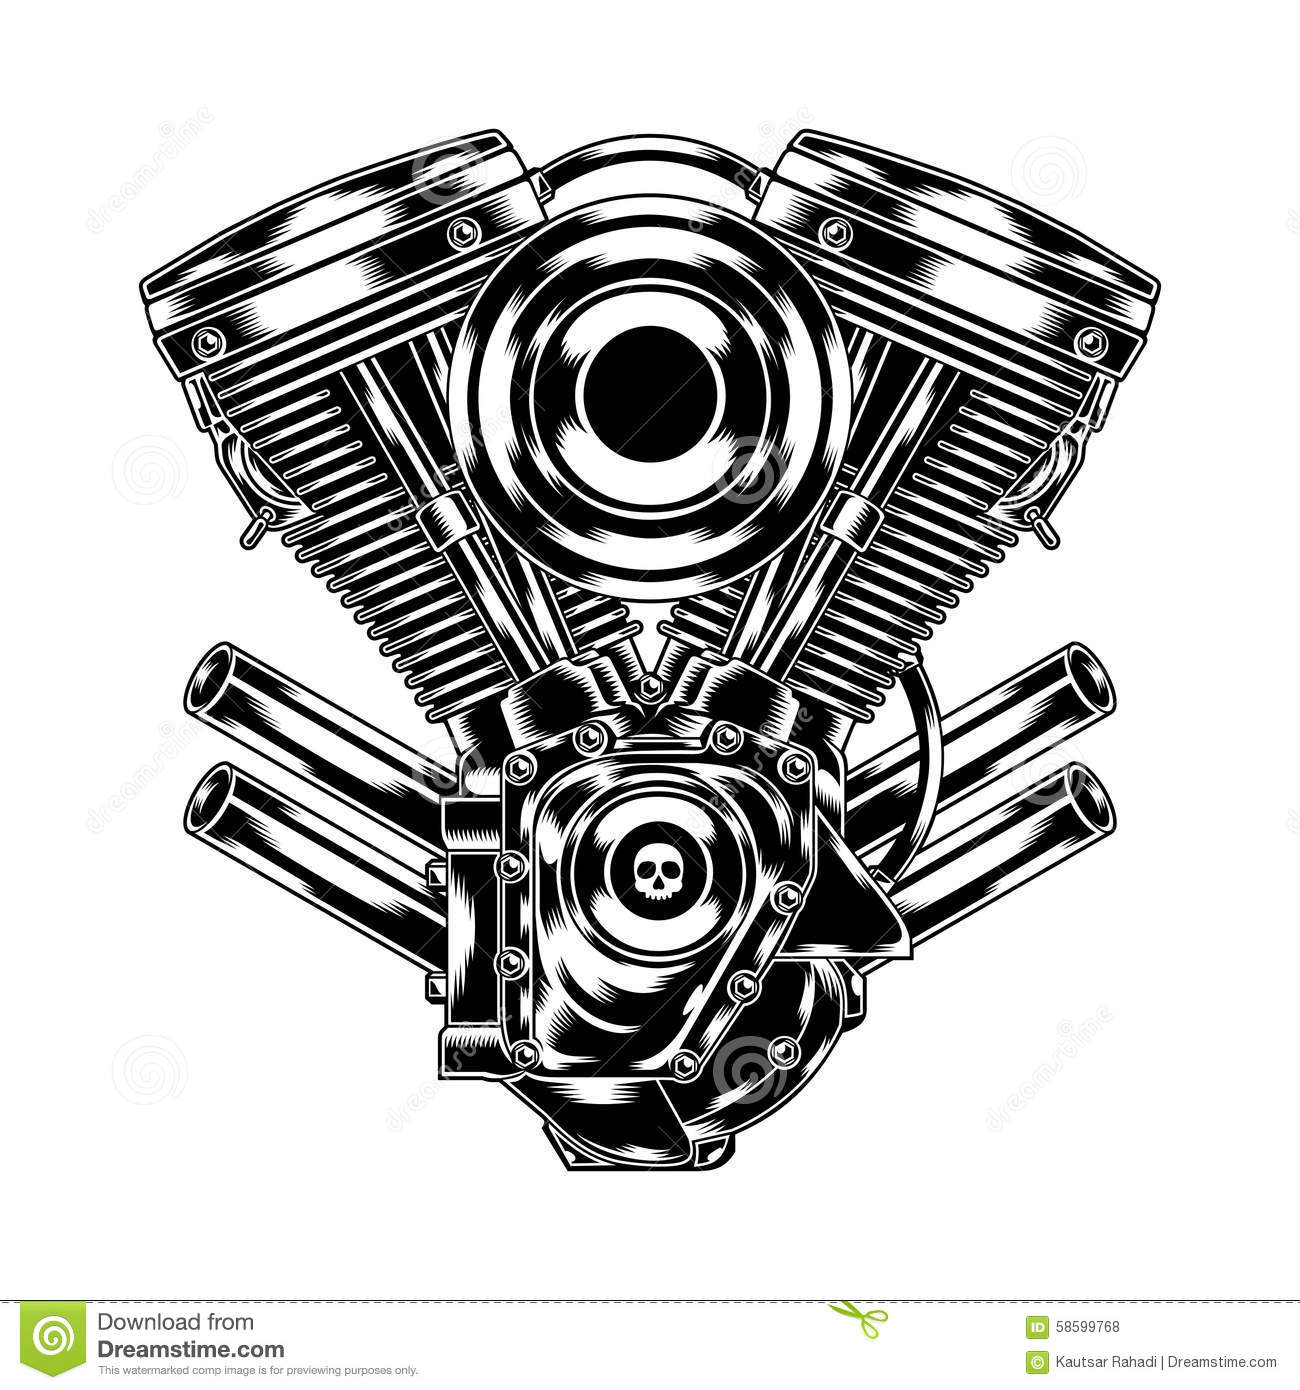 Engine Block Clipart